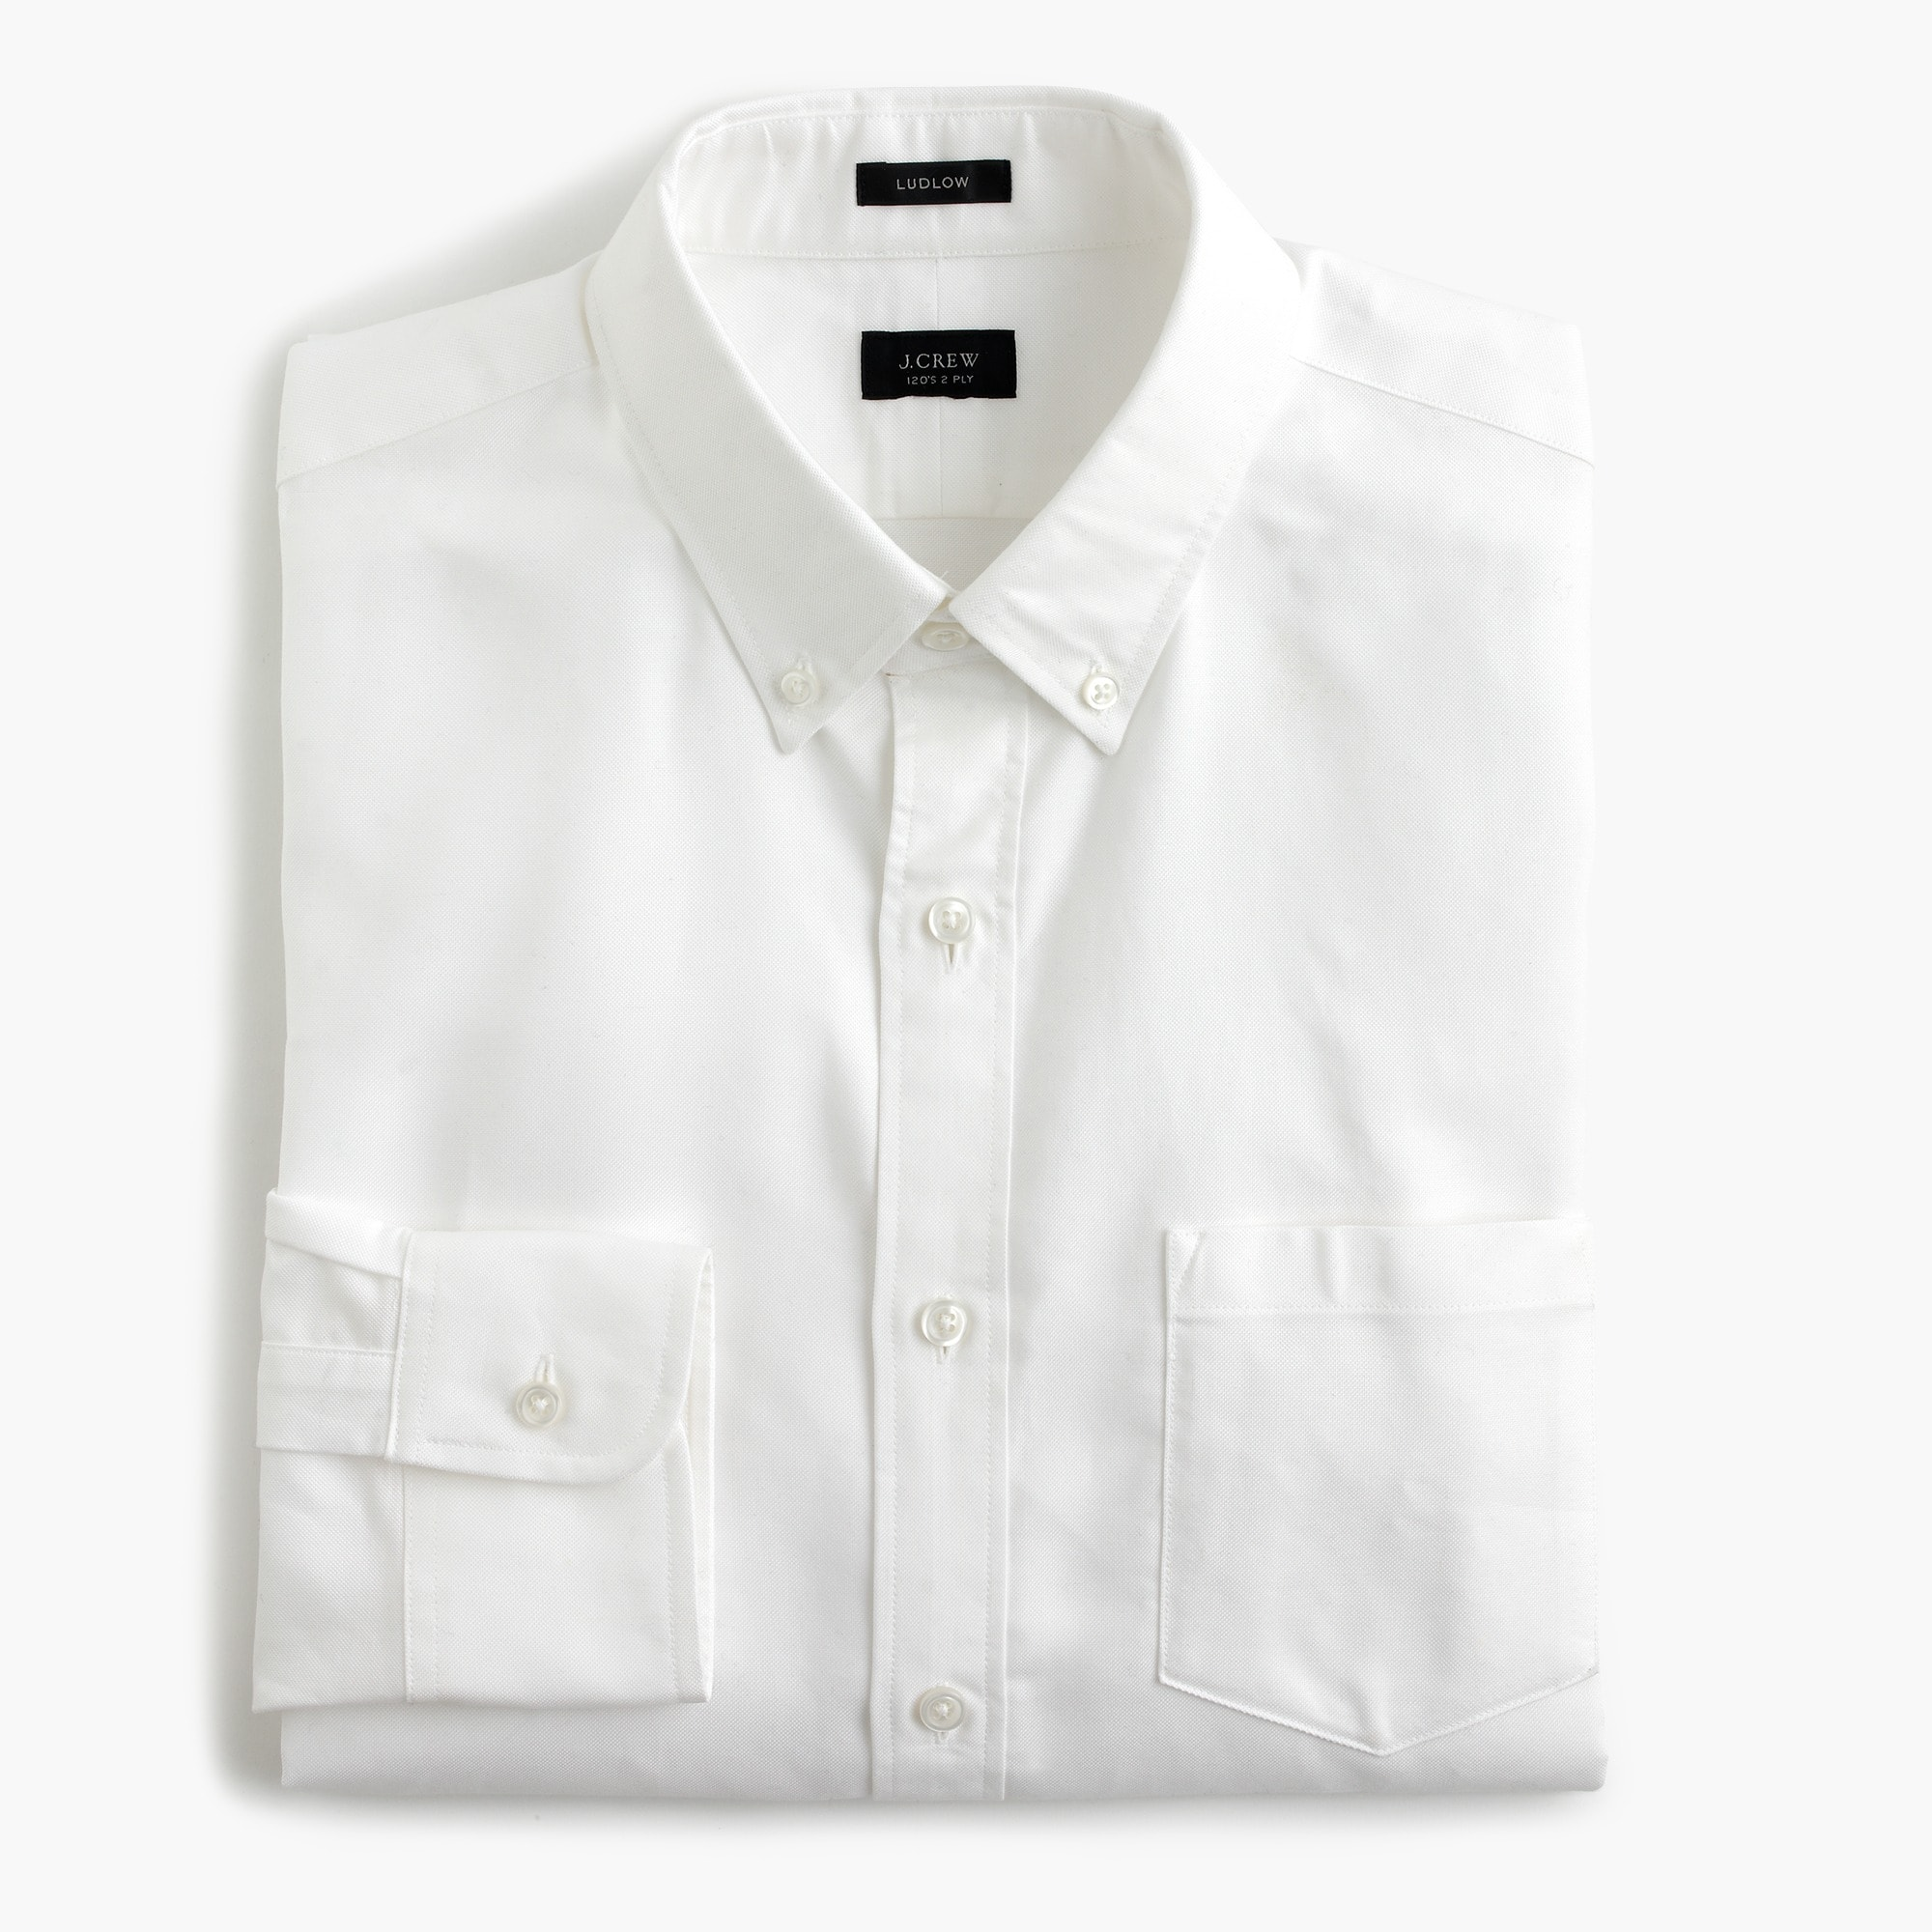 Image 1 for Ludlow Slim-fit cotton oxford shirt in white